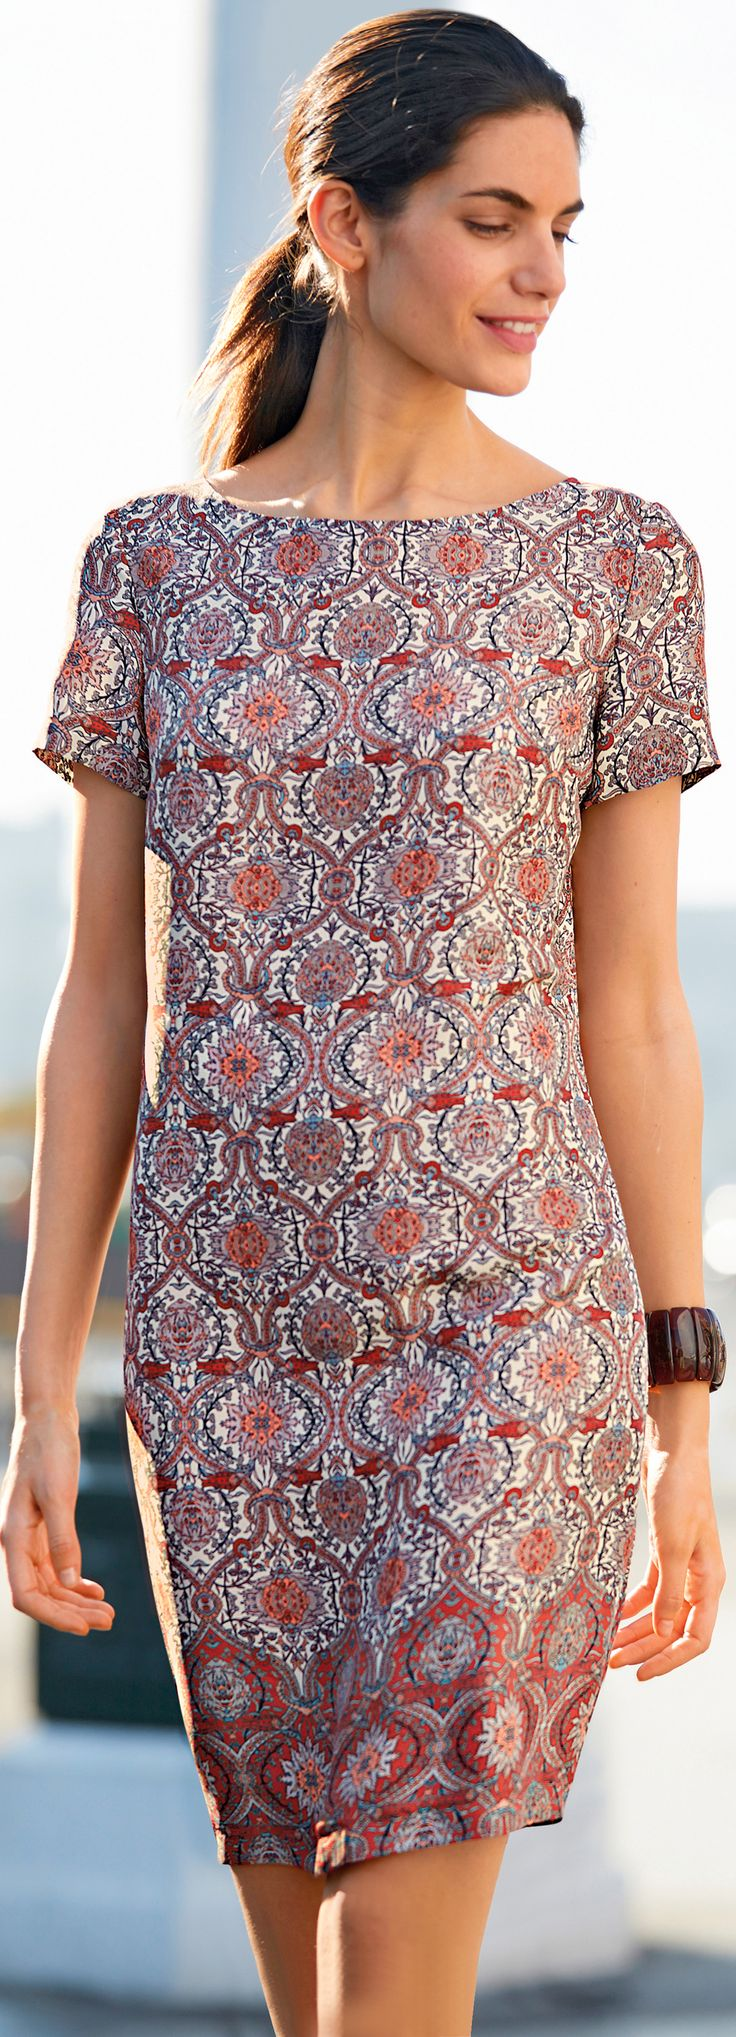 Even the French are loving Moroccan tile prints - http://www.boomerinas.com/2015/05/14/moroccan-tile-print-maxi-dresses-tunics-for-women-over-40-50-60/